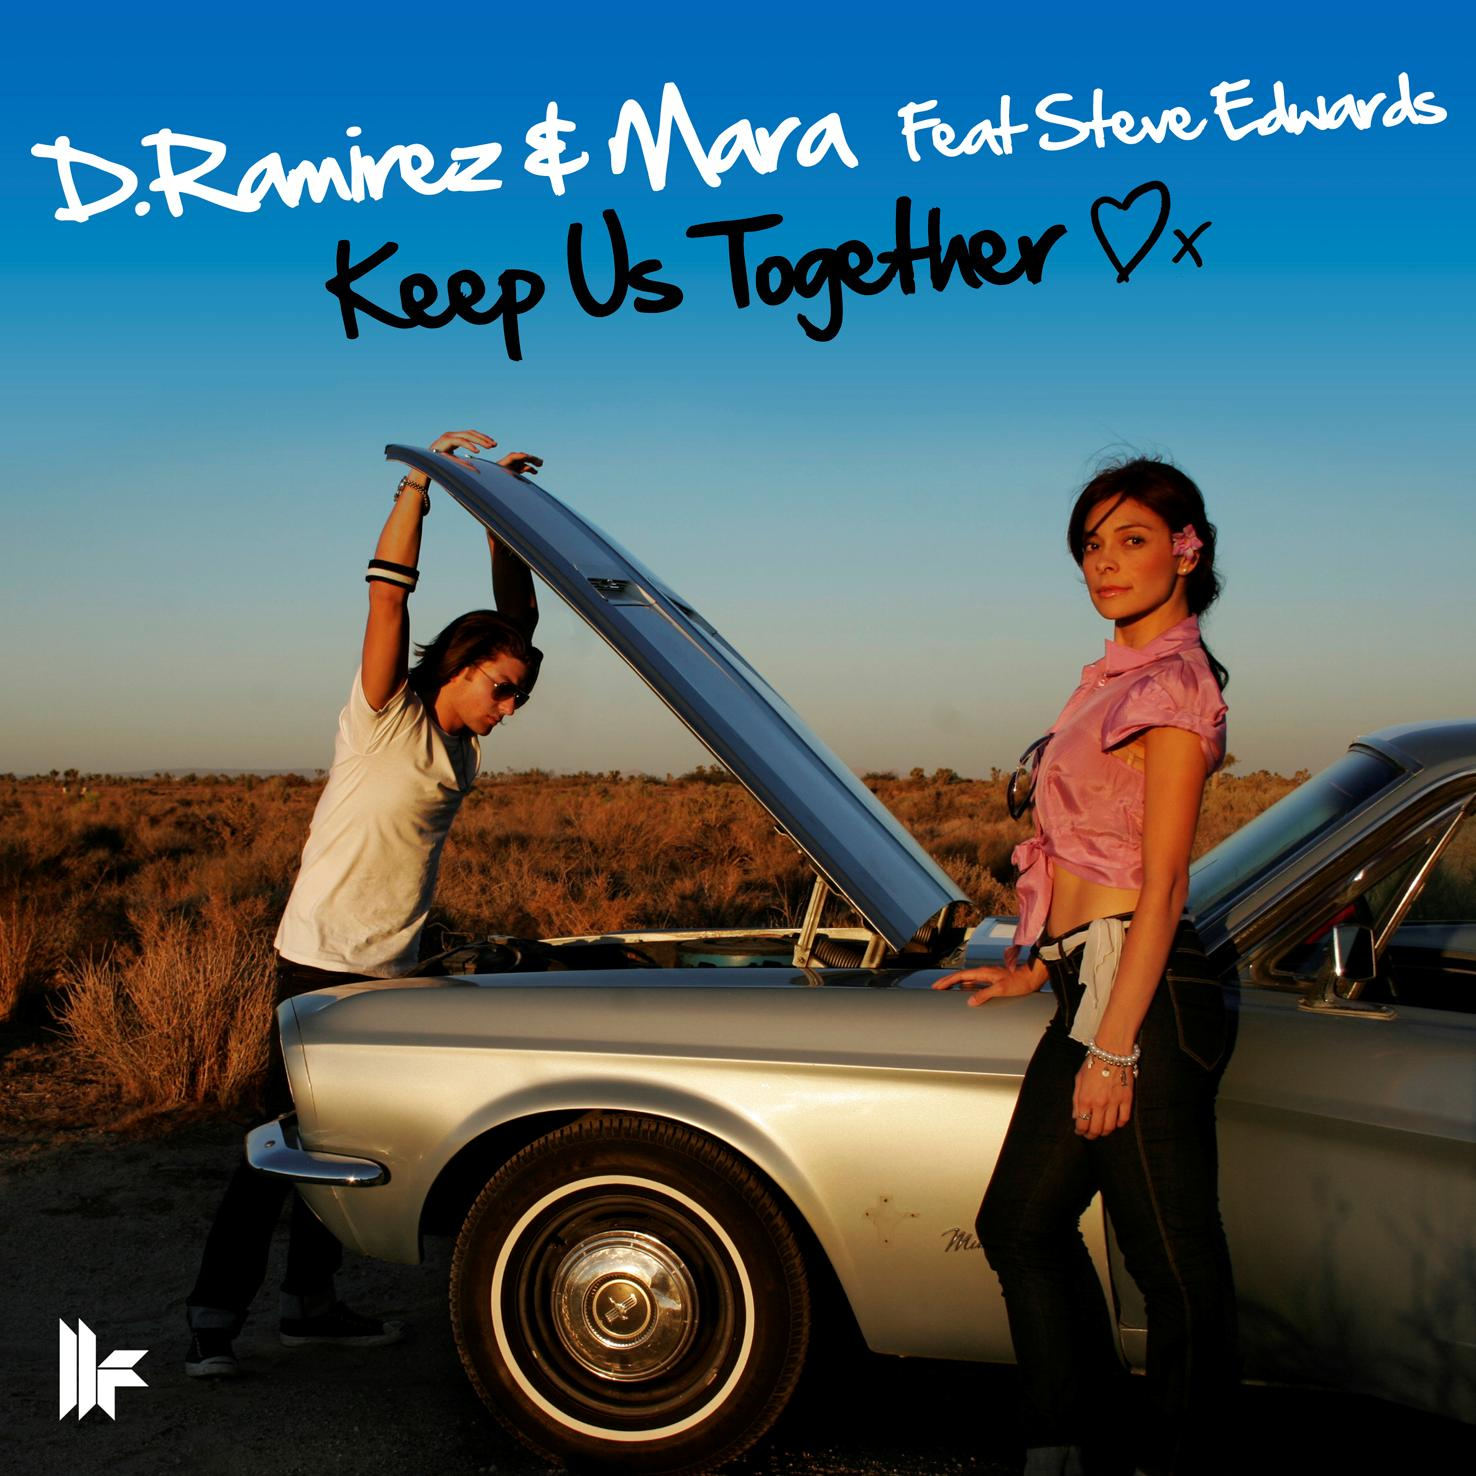 D Ramirez and Mara feat Steve Edwards - Keep us together